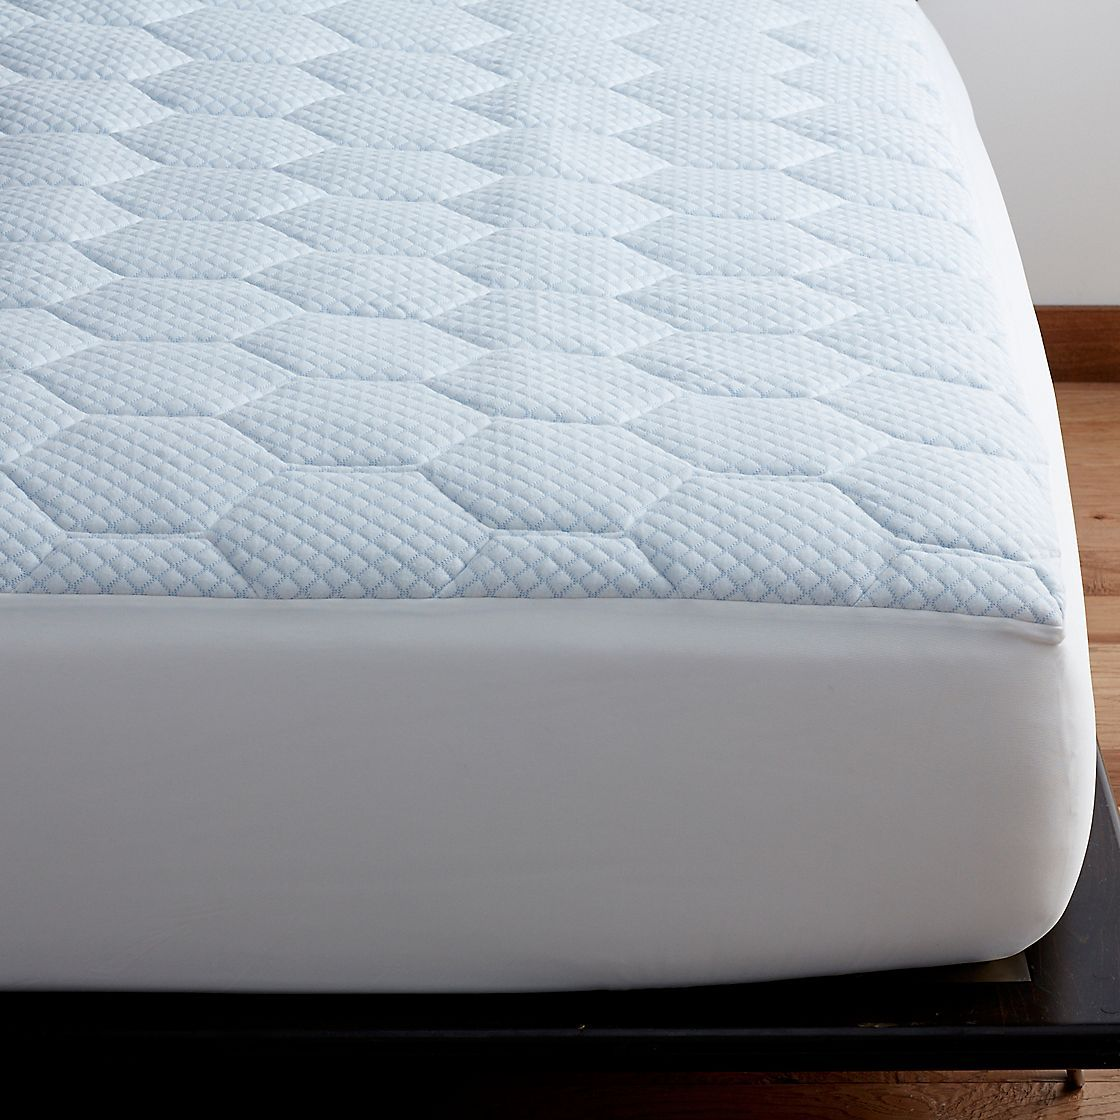 Cooling Gel Memory Foam Mattress Pad The Company Store Foam